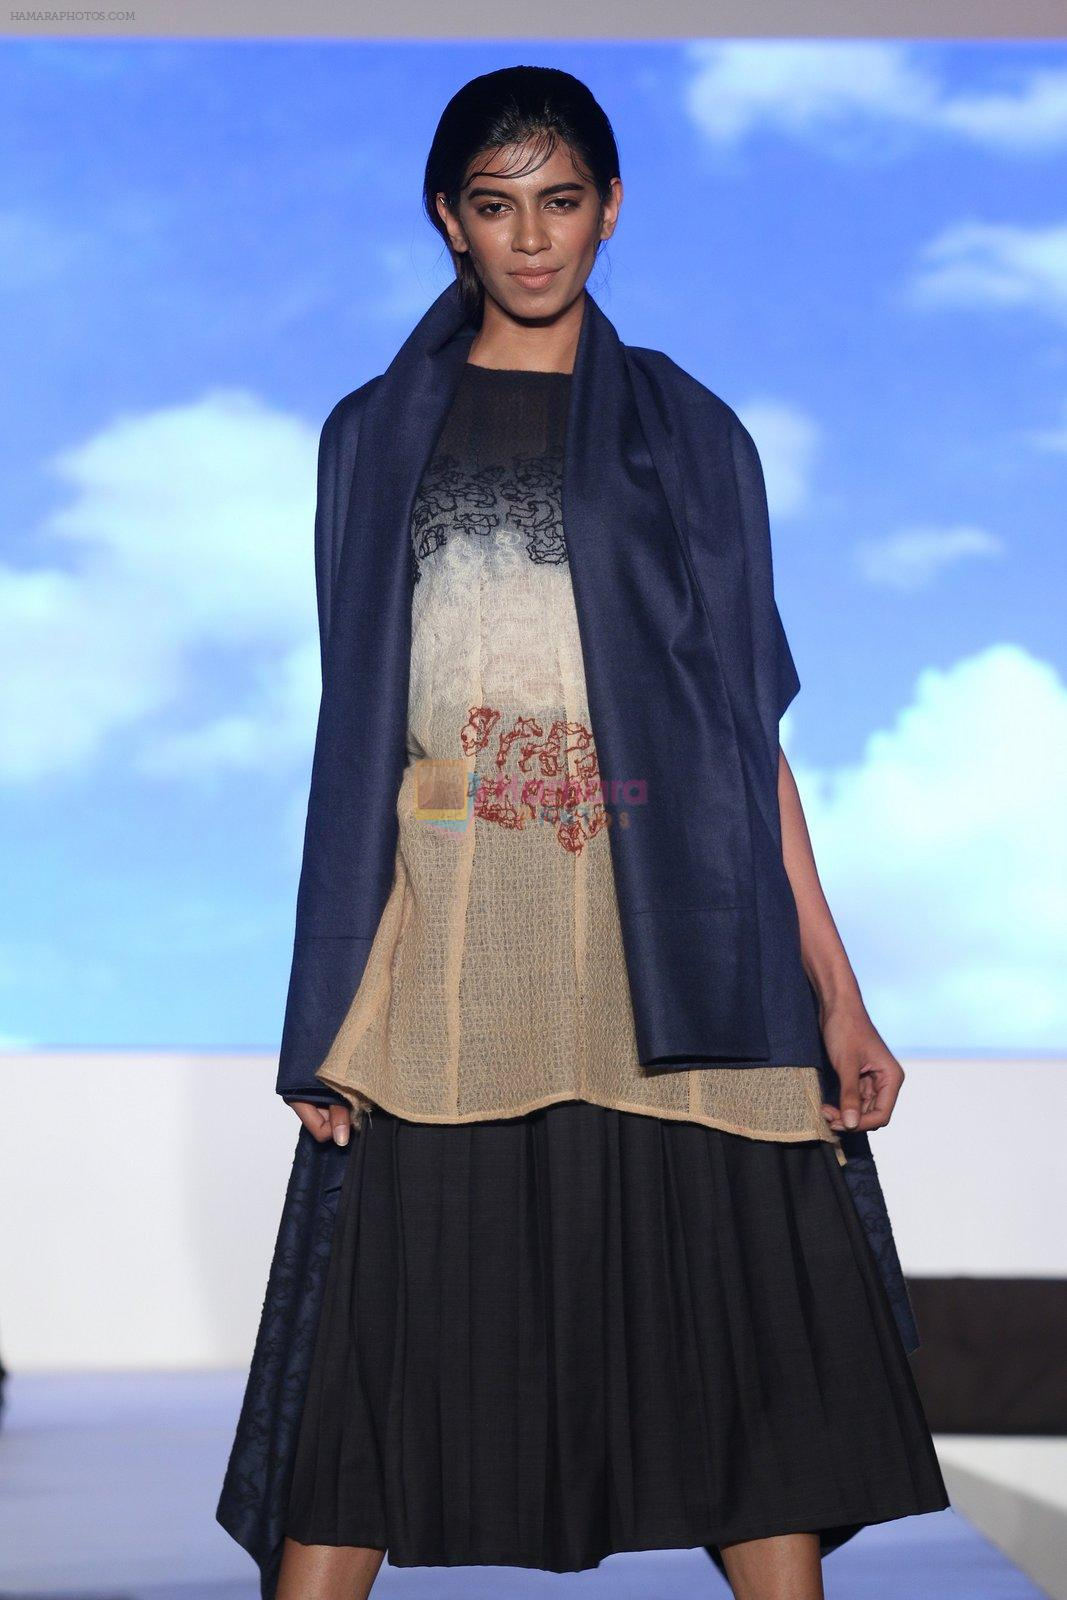 Model in Apoorva Wadhwa 2nd Runner Up Wool Runway Creation